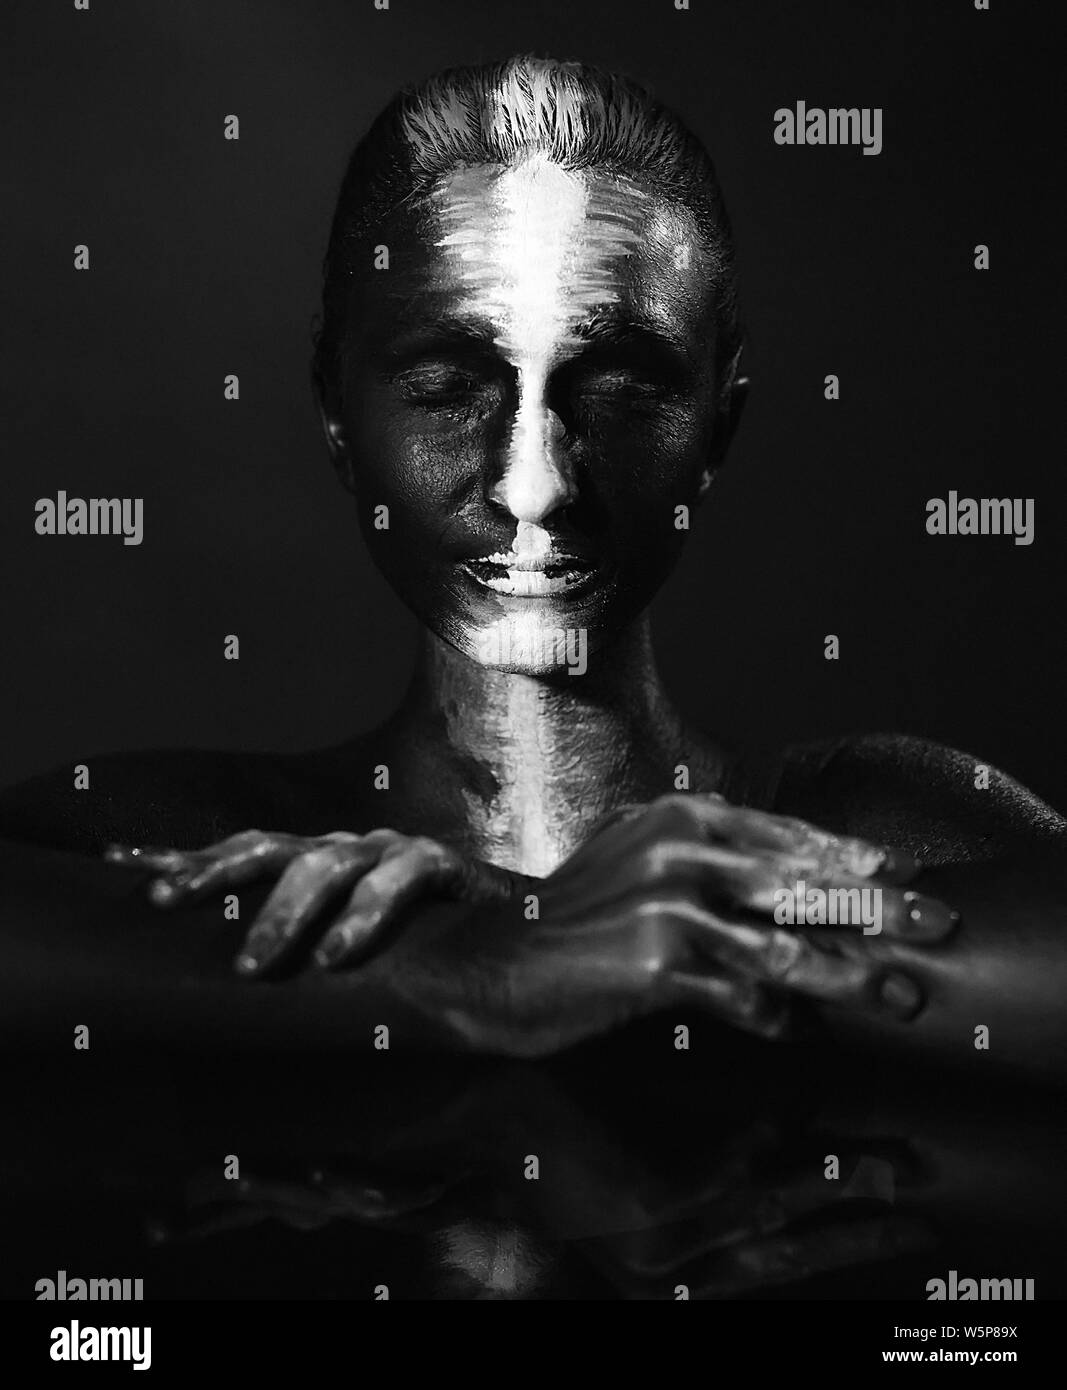 Body Art Black And White Stock Photos Images Alamy